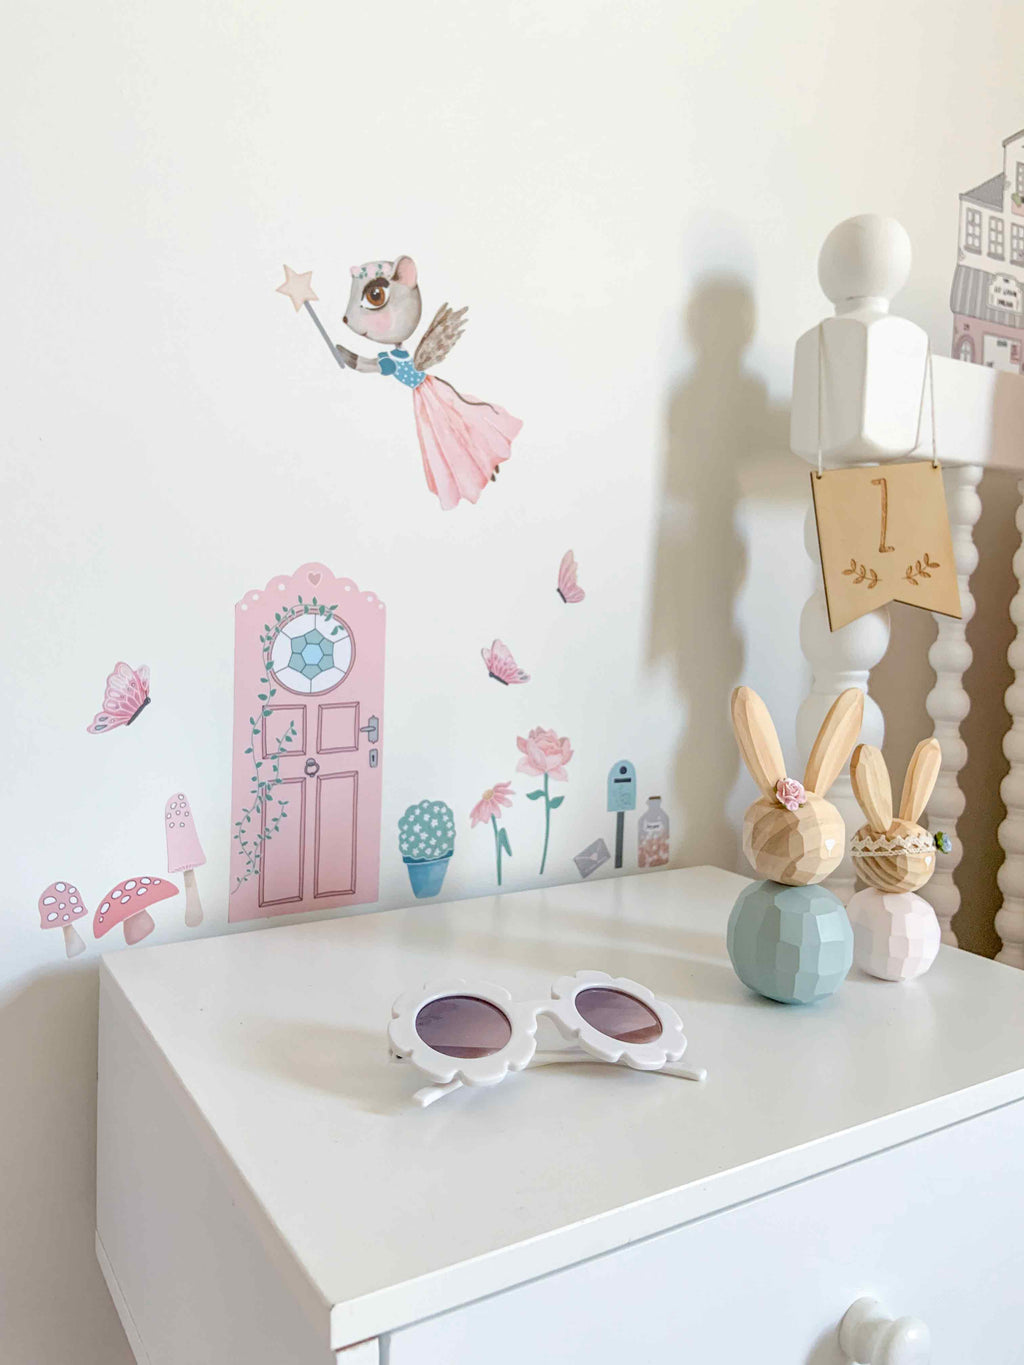 fairy-door-tillie-removable-wall-decal-sailah-lane-childrens-decor-faith-laine